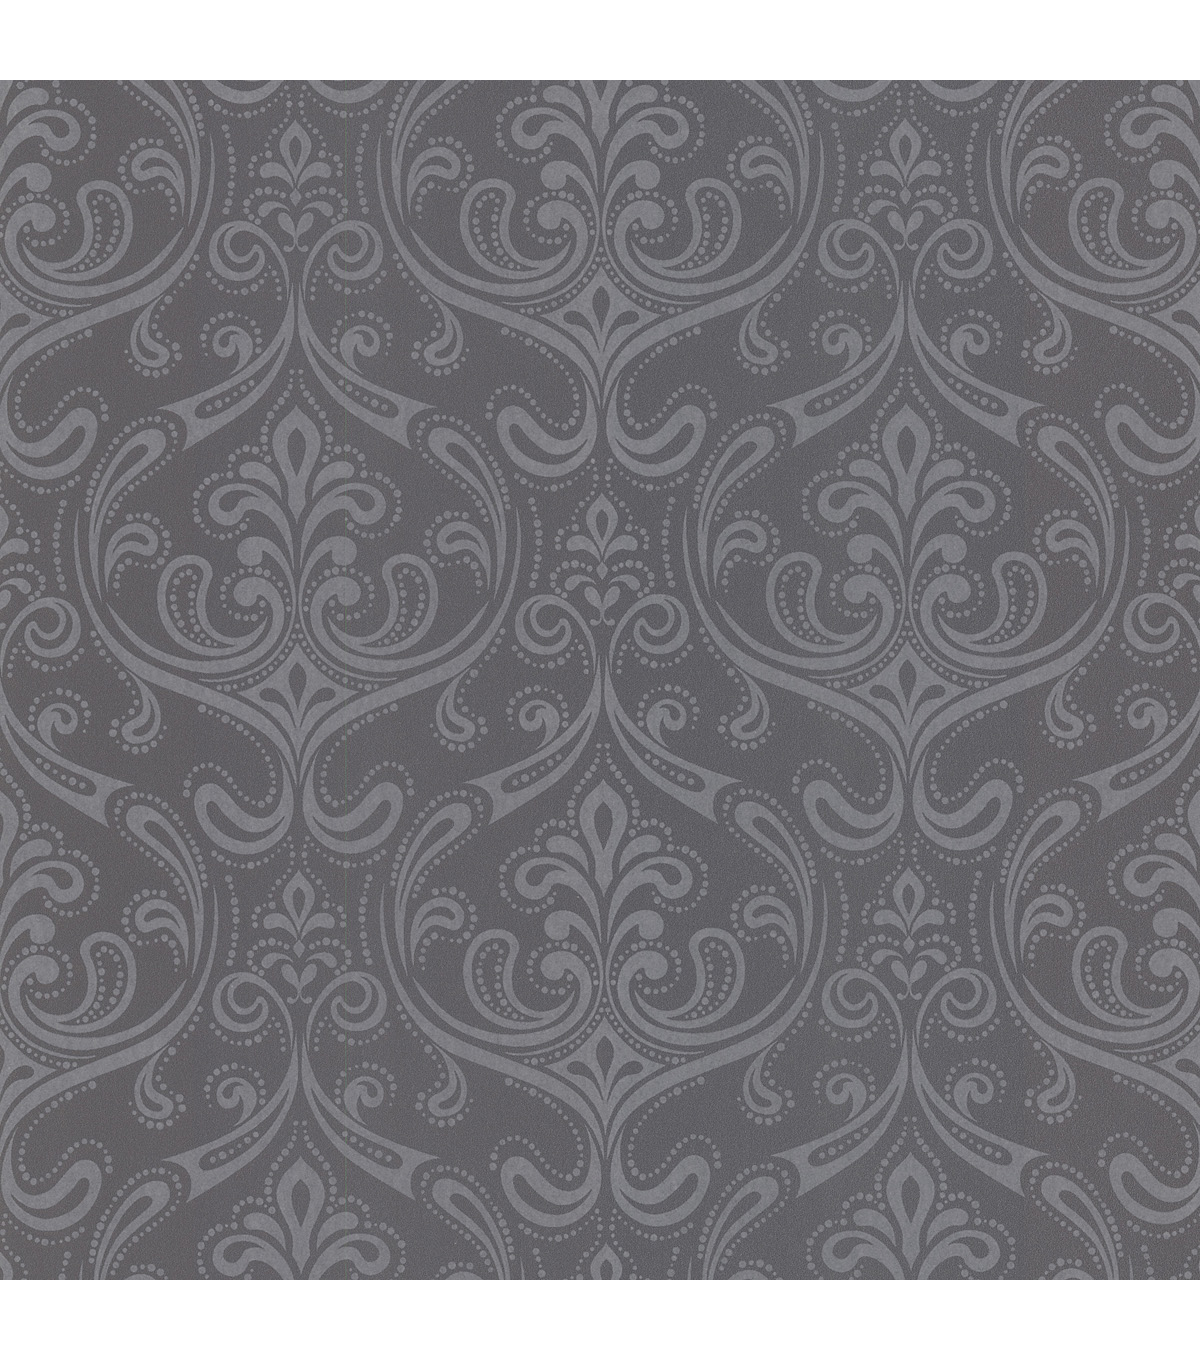 Anastaise Grey Ogee Damask Wallpaper Sample